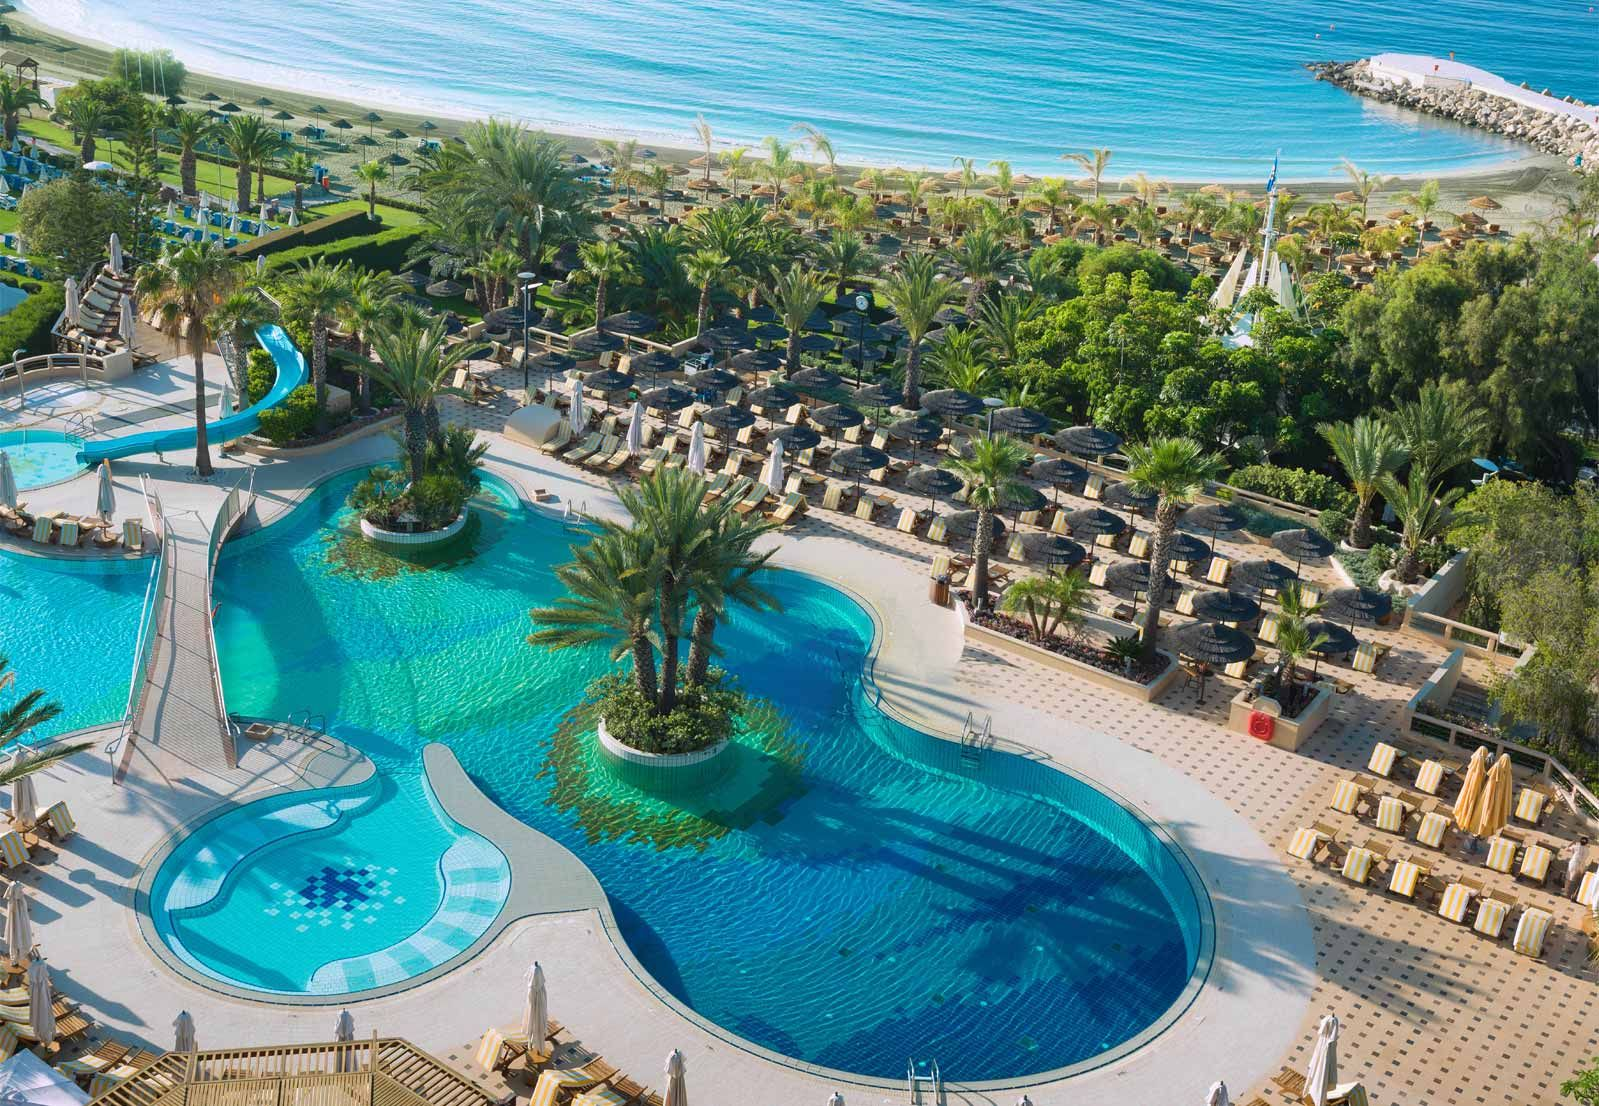 four seasons limassol cyprus luxury 5 star hotel resort